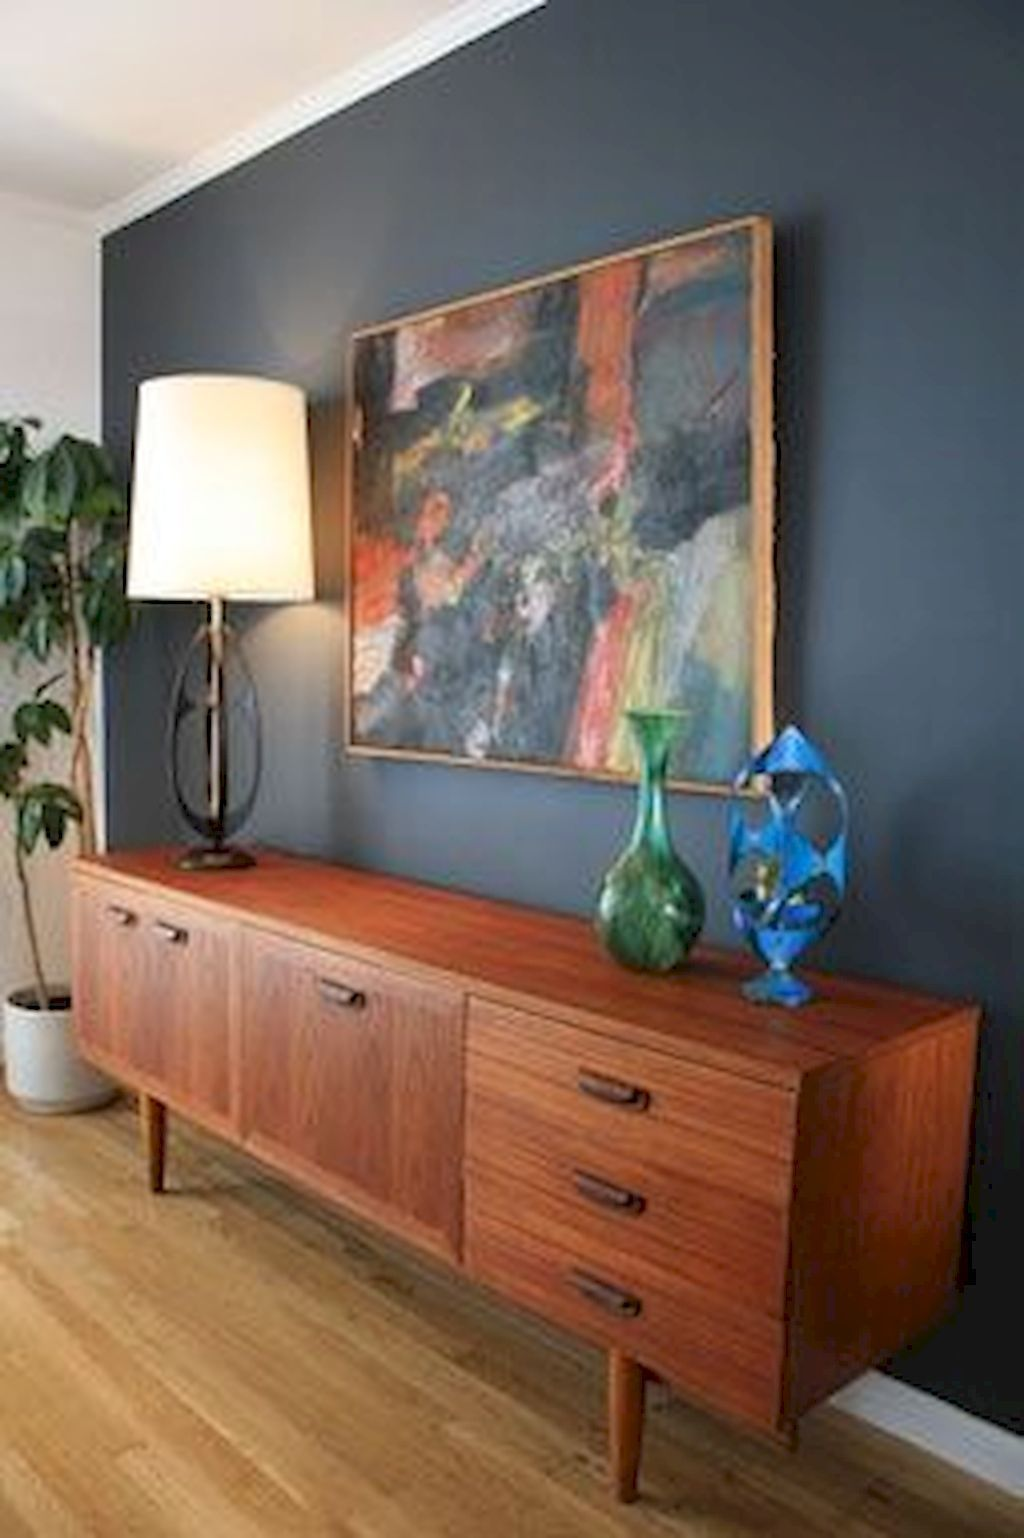 80 awesome mid century modern design ideas 49 in 2019 decorating rh pinterest com